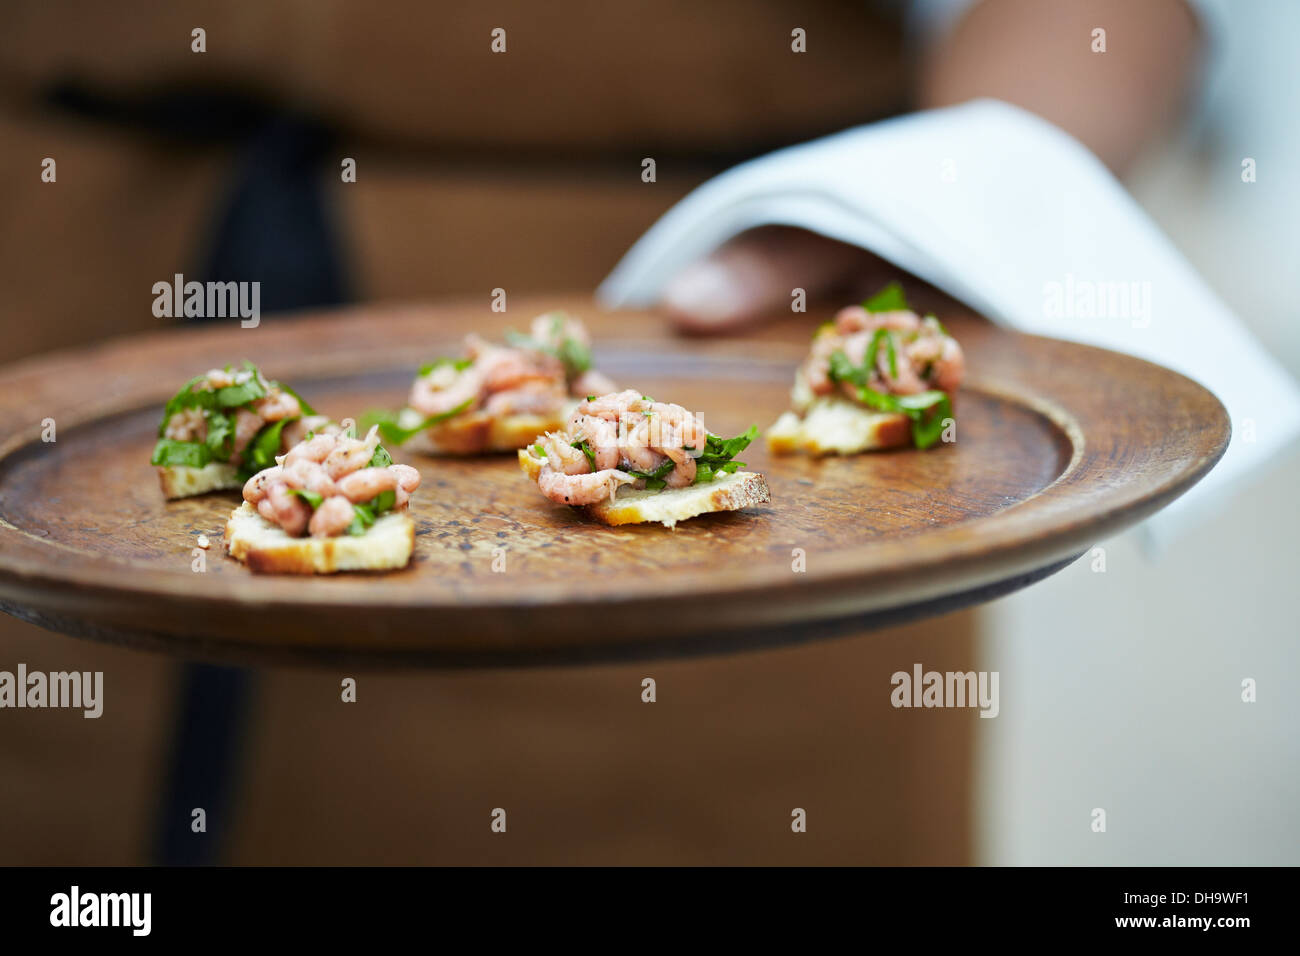 Close up of a person serving canap s from a stylish wooden for Canape serving platters